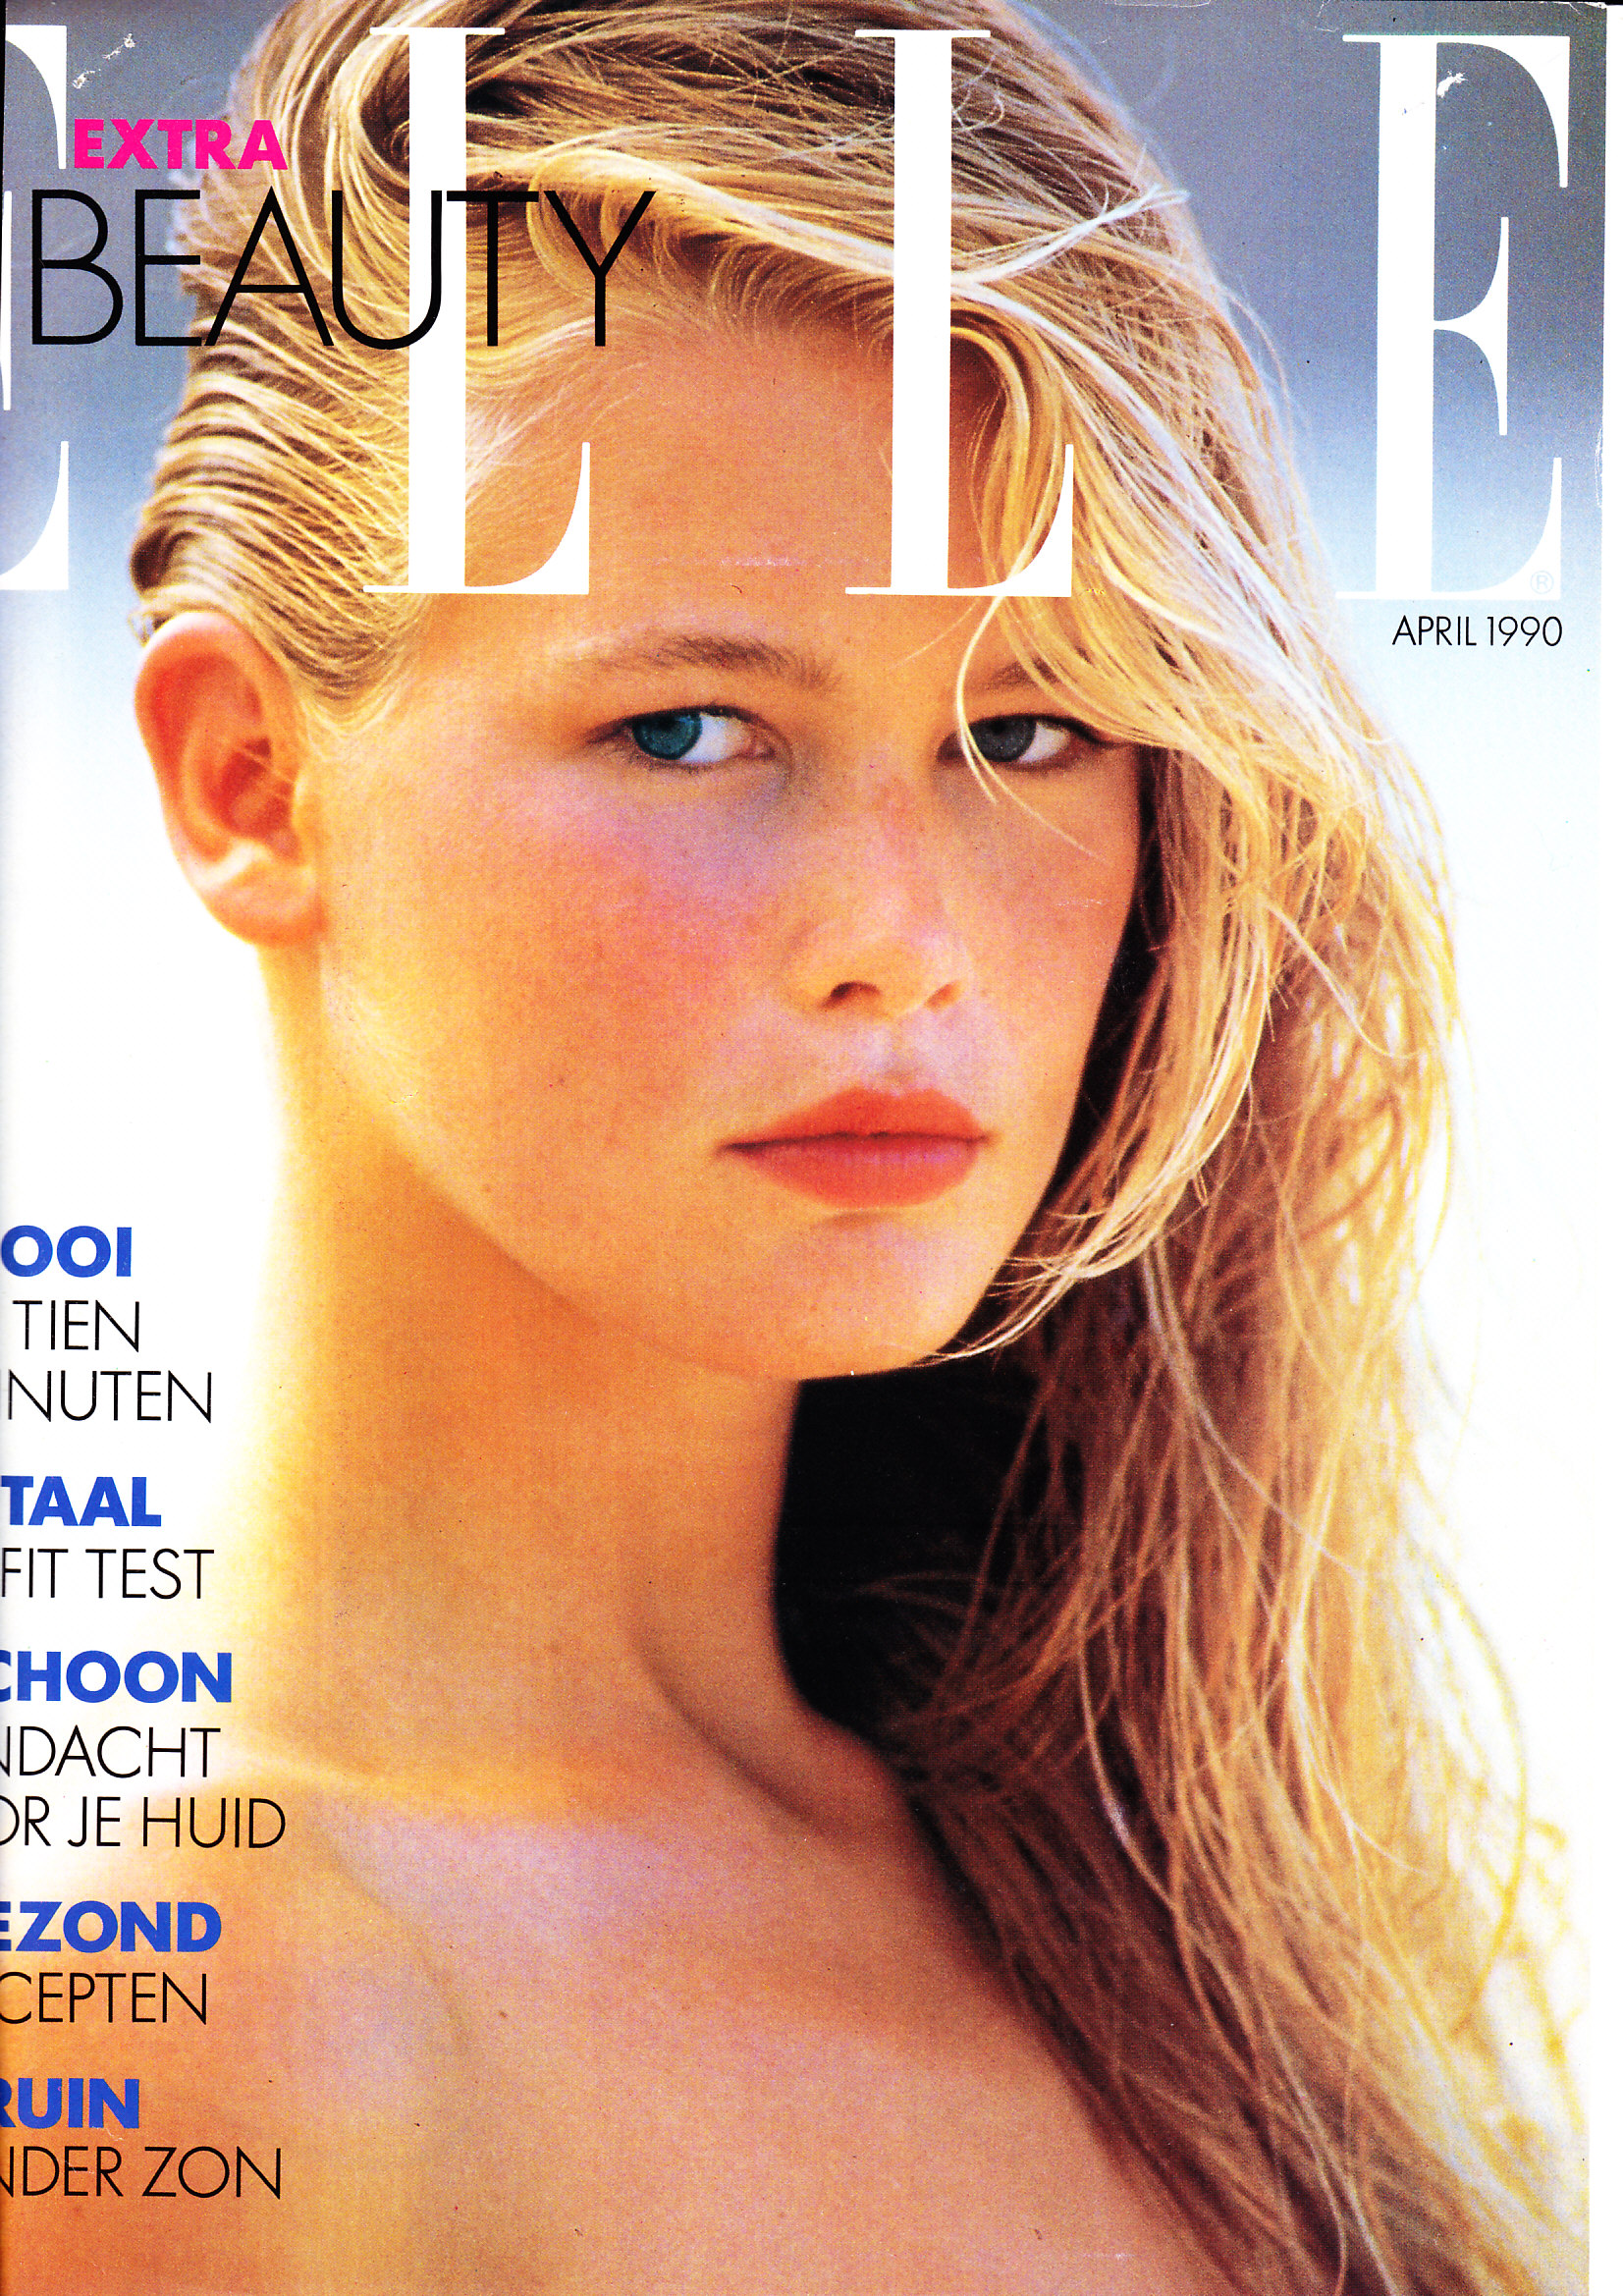 Claudia Schiffer - Page 253 - Female Fashion Models